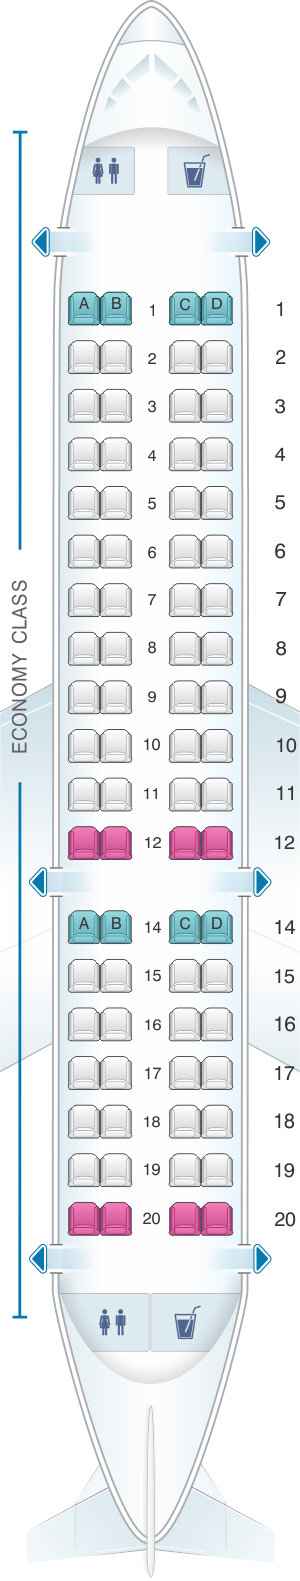 Seat map for Aeromexico Embraer EMB 170